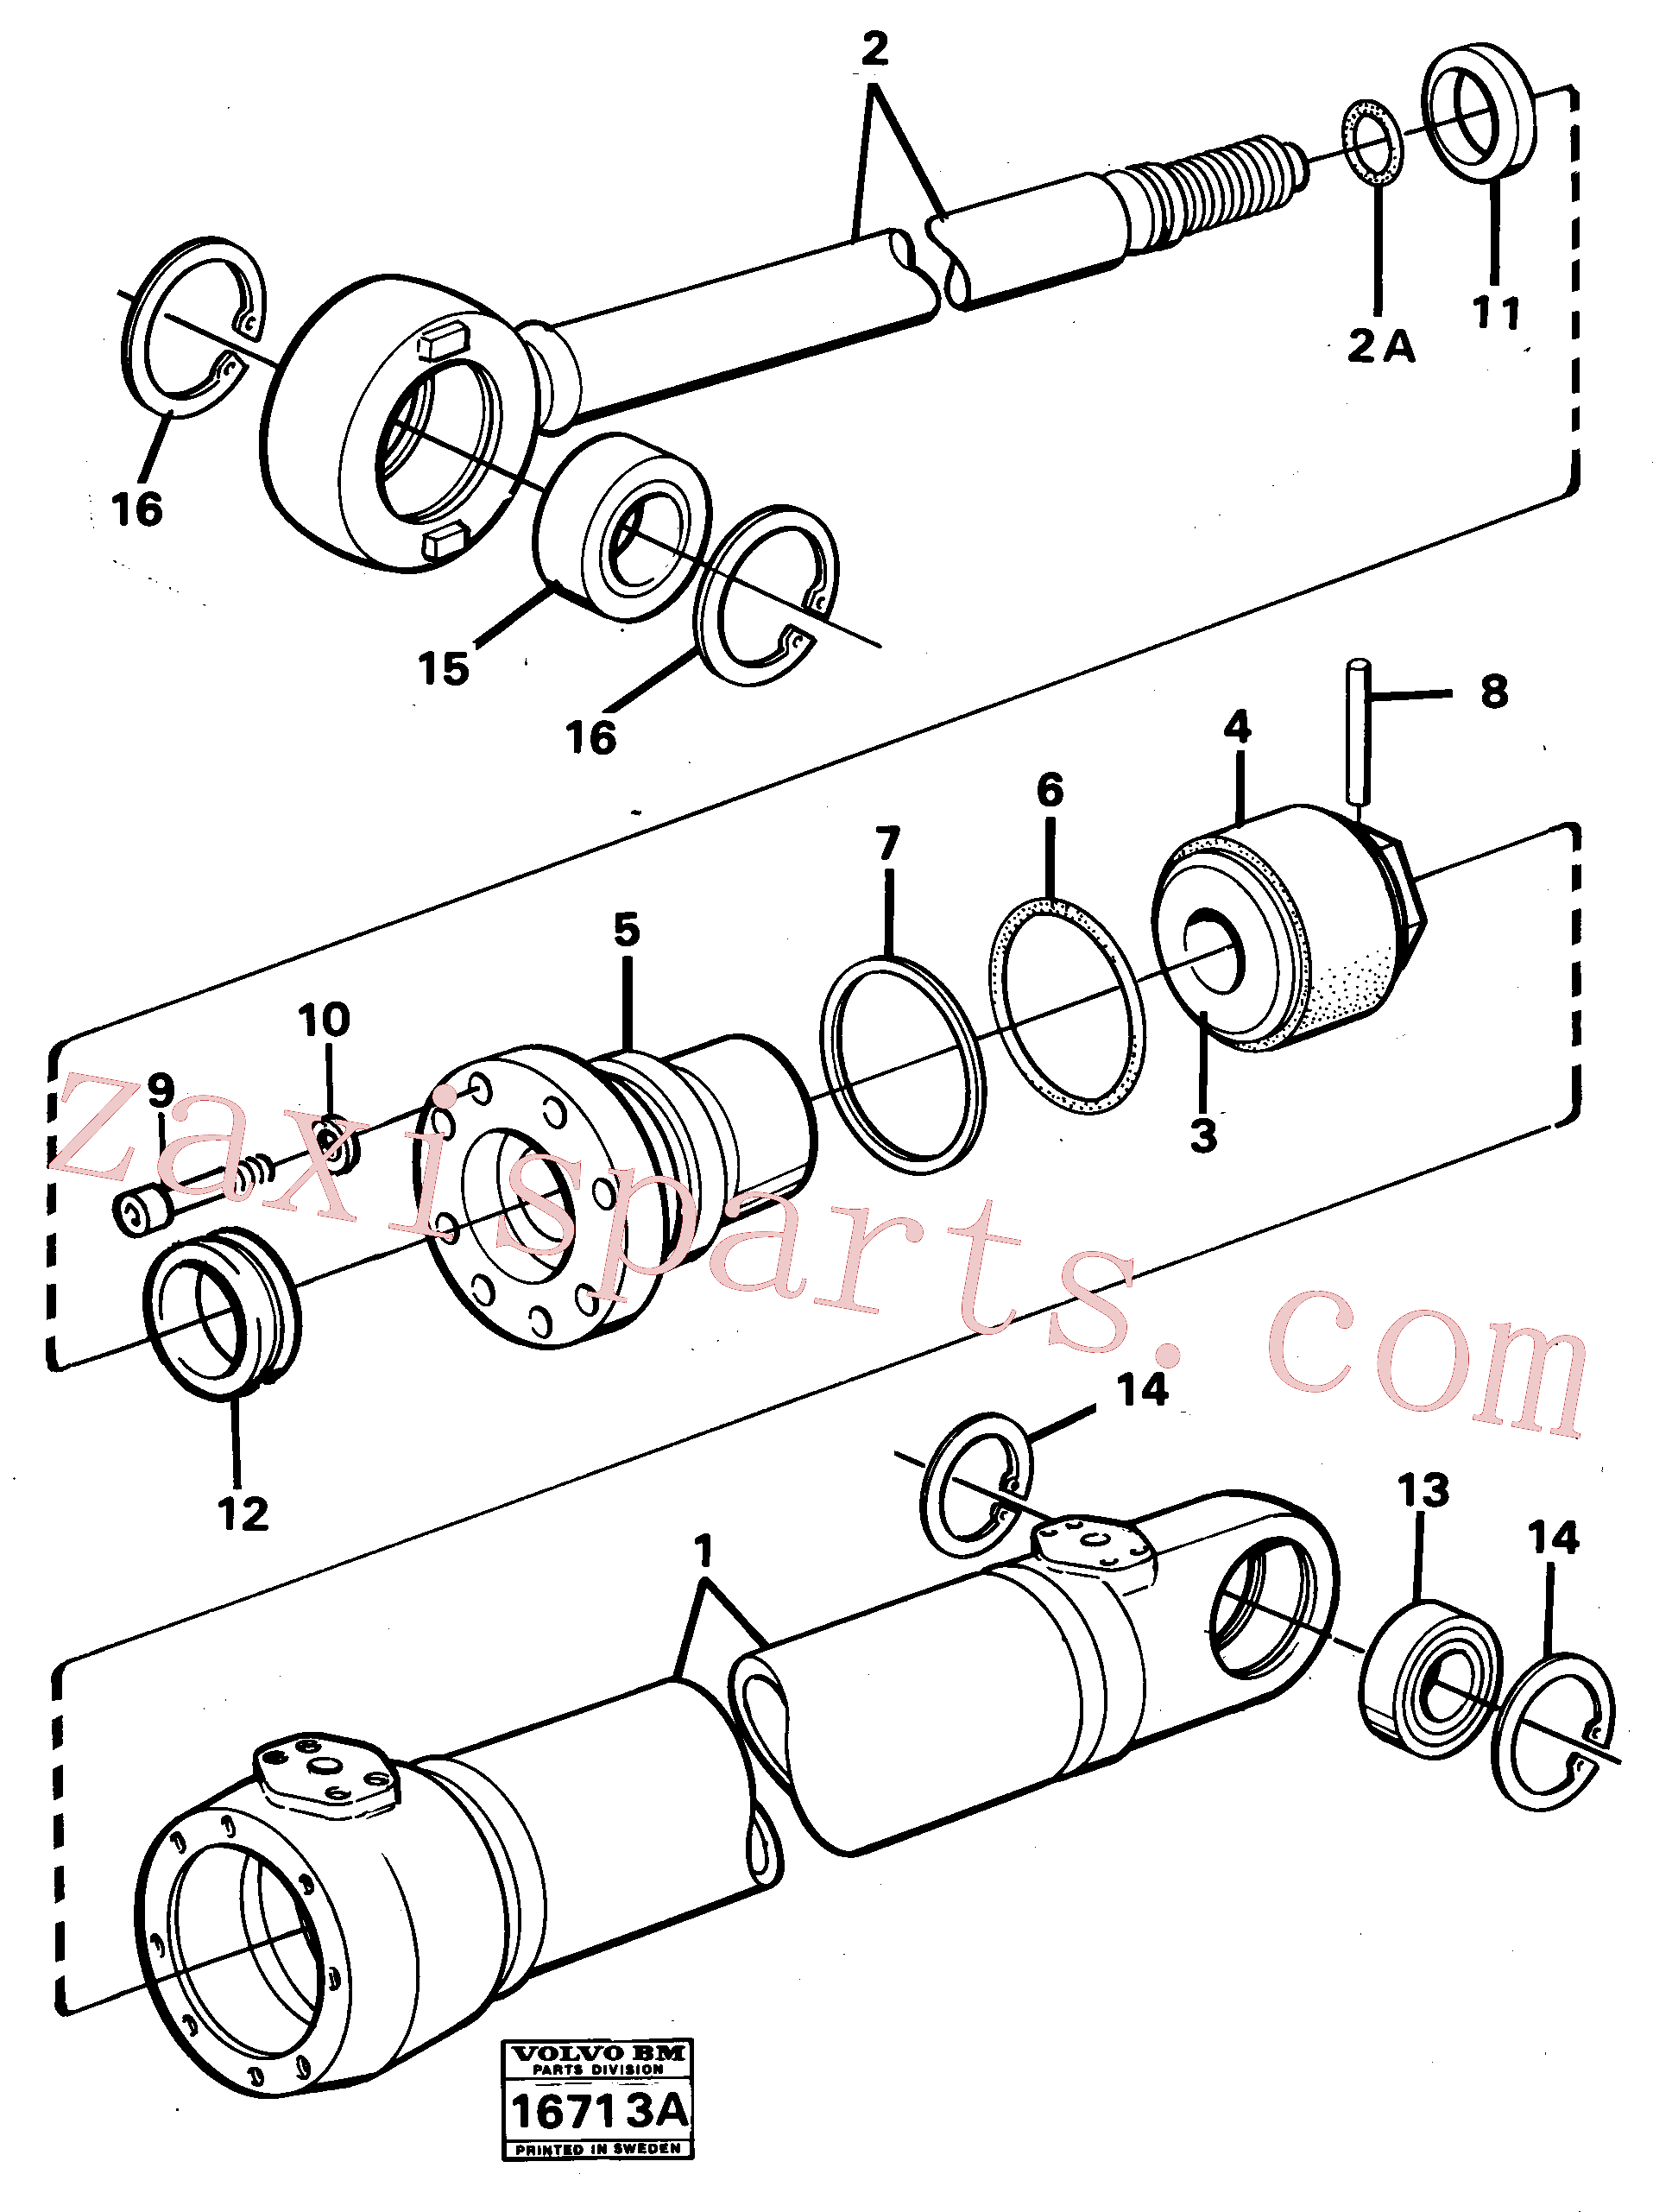 VOE14260828 for Volvo Hydraulic cylinder(16713A assembly)